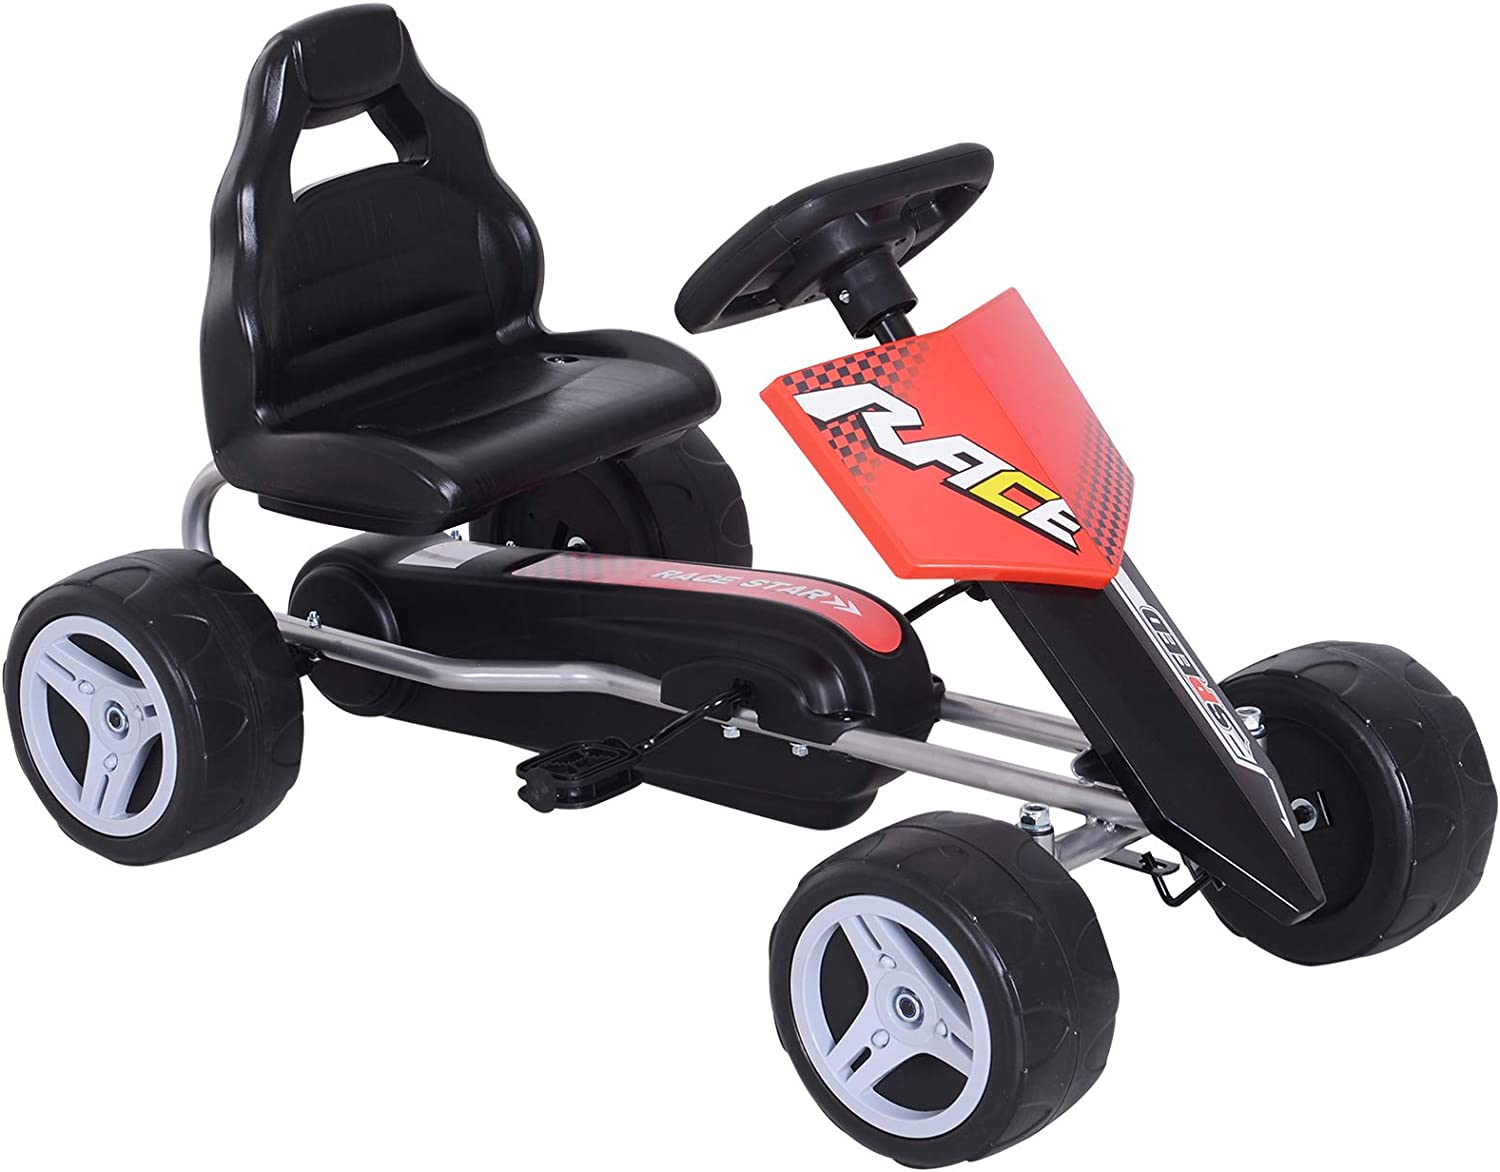 Aosom Sales results No. 1 Kids Go Kart 4 Wheeled Ride Cheap mail order shopping On Racer Pedal Car for Boys